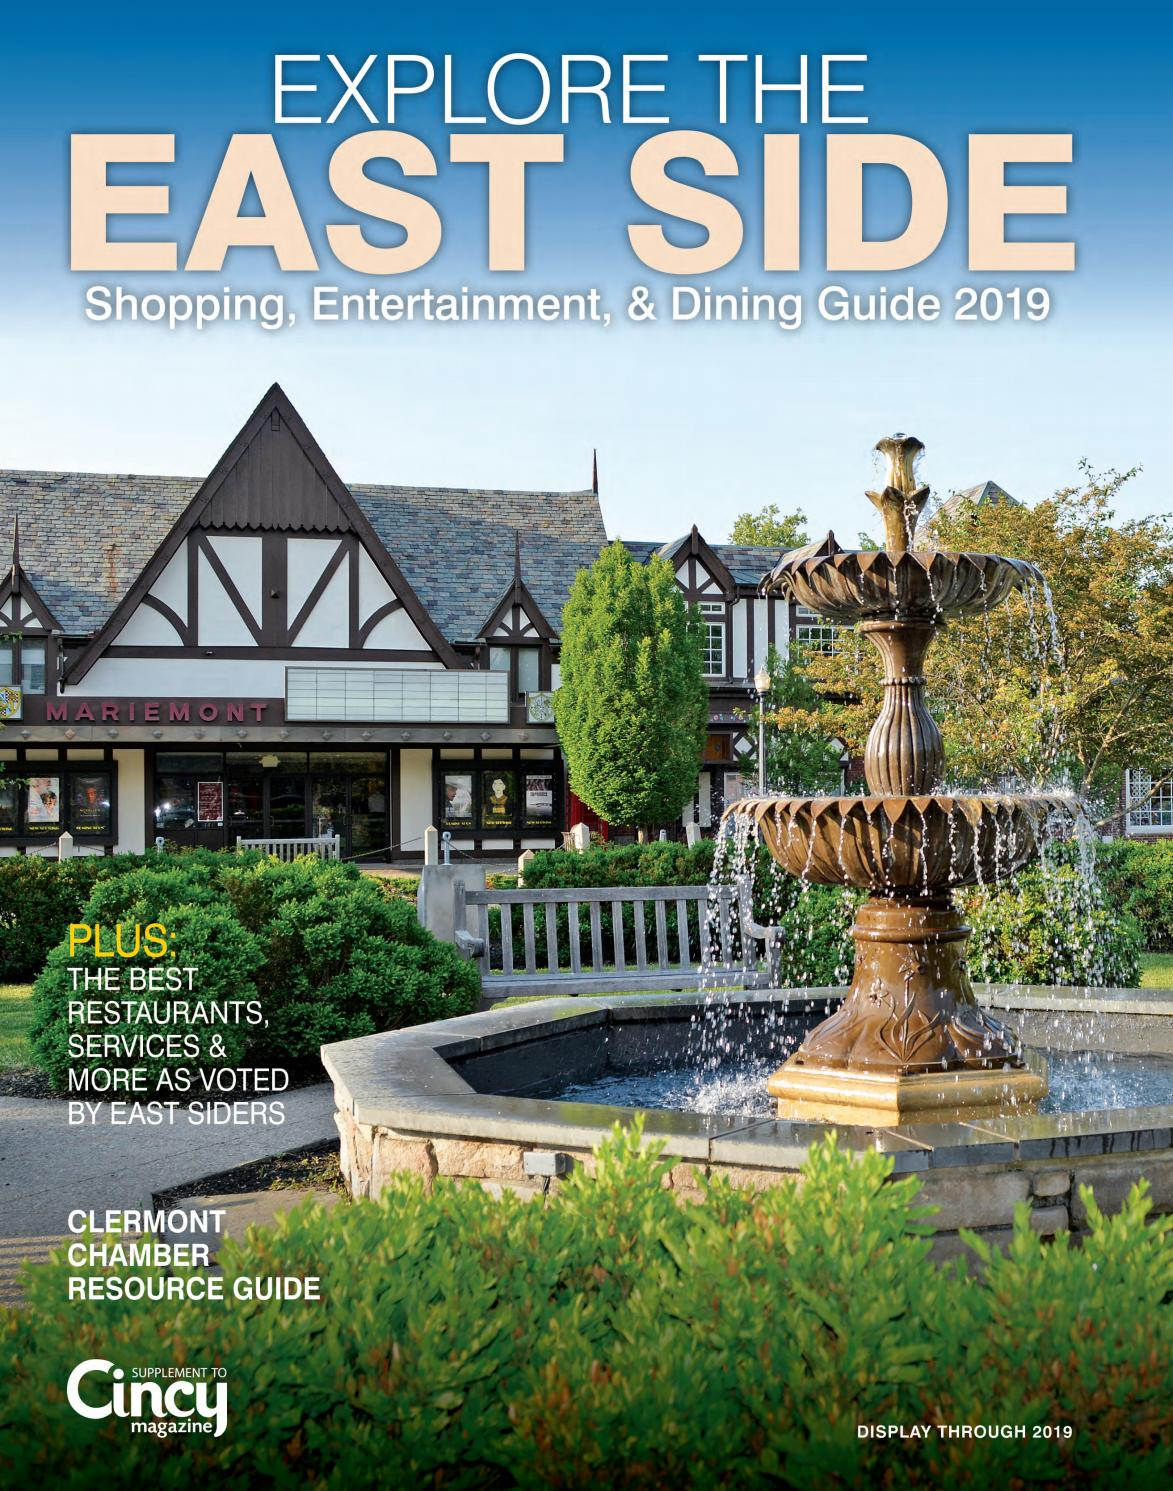 catalogs for home decor elegant home decor creative home.htm explore the east side 2019 by cincy magazine issuu  2019 by cincy magazine